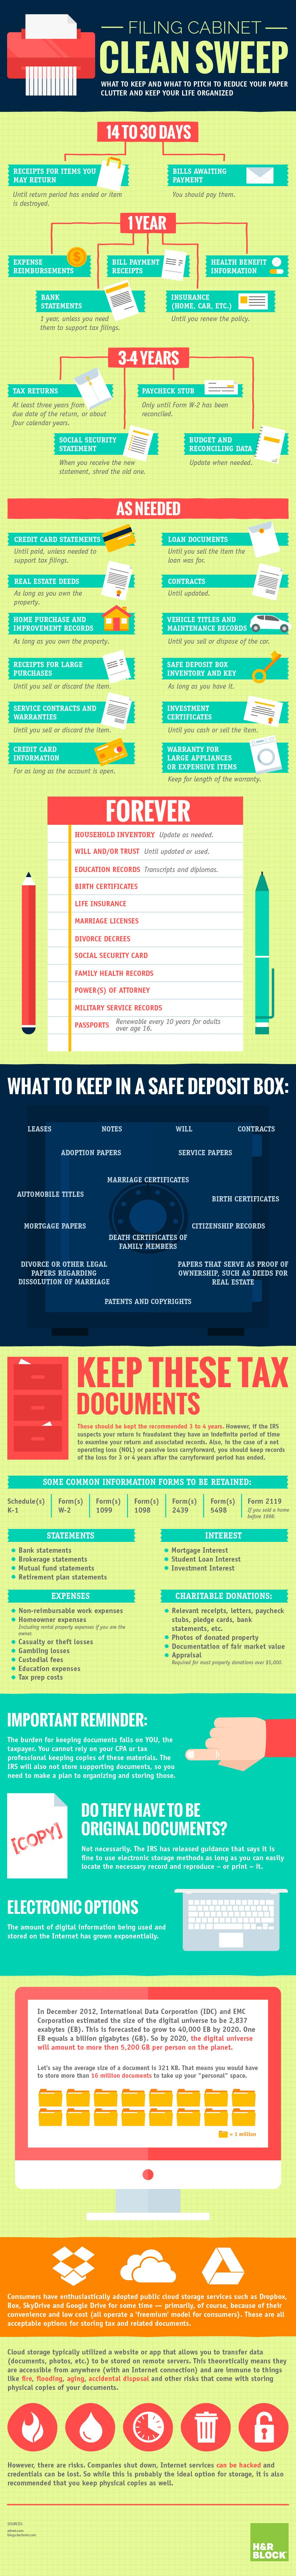 this guide can help you sort through the stack of documents this guide can help you sort through the stack of documents receipts and other papers